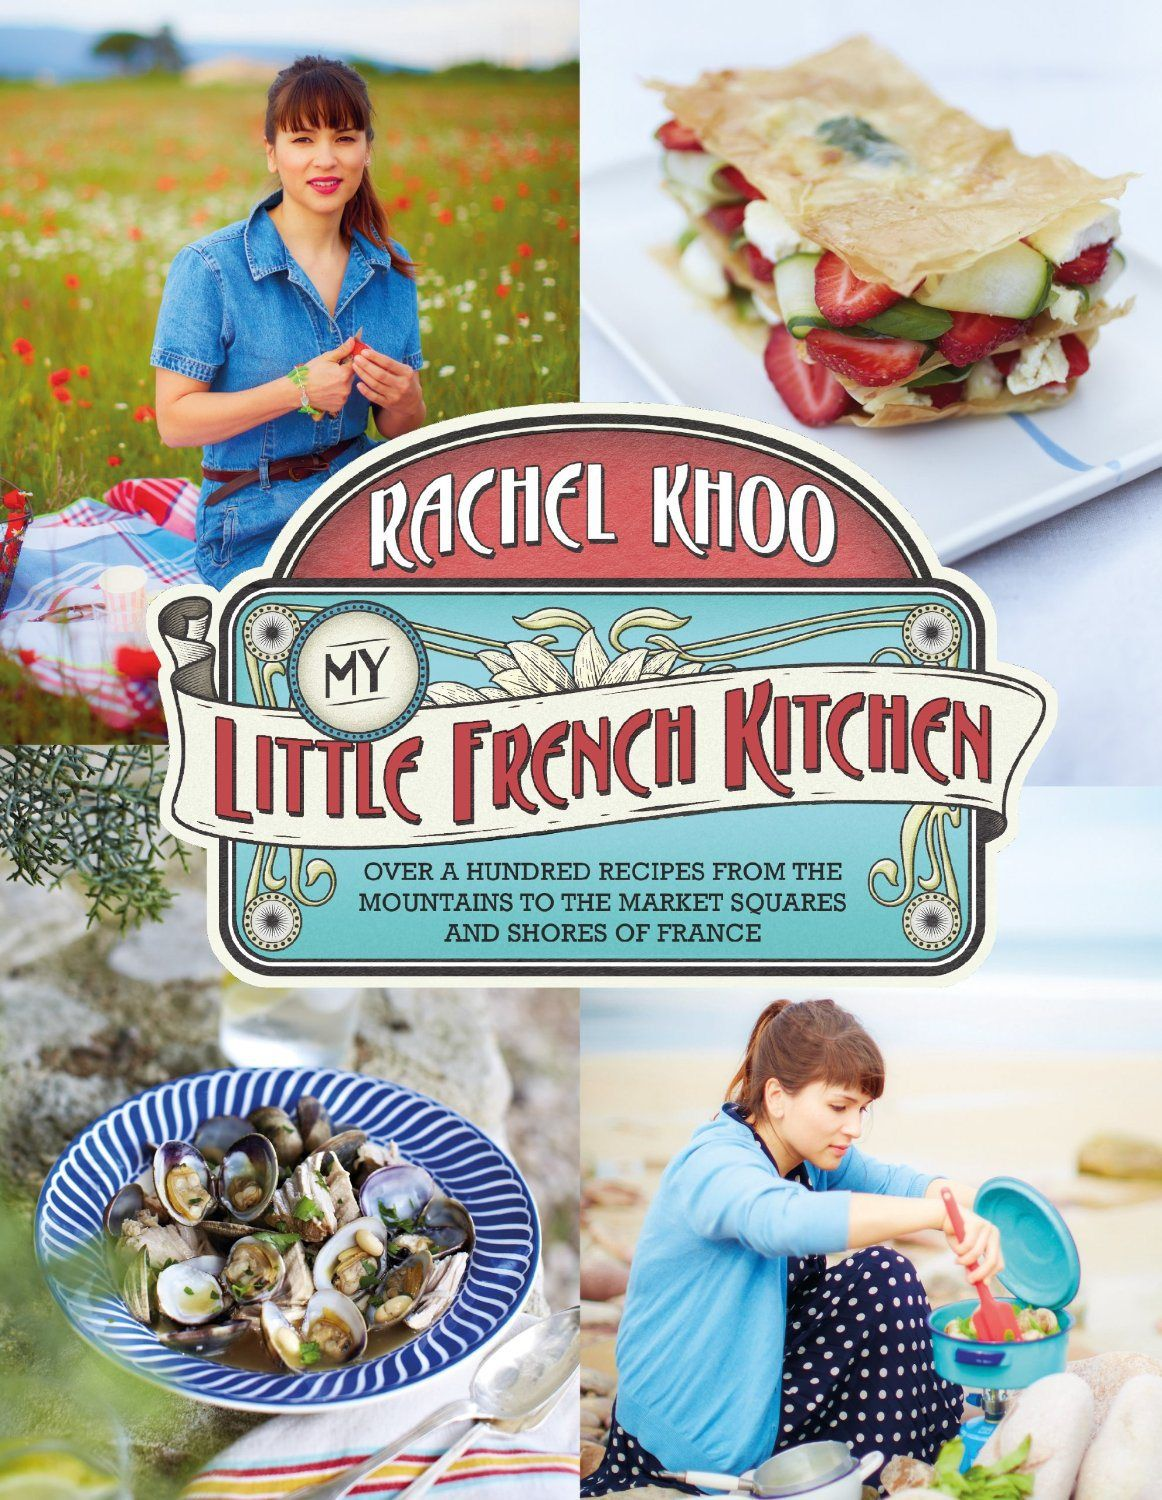 The new Rachel Khoo! | Food | Pinterest | Rachel khoo, Cookery books ...